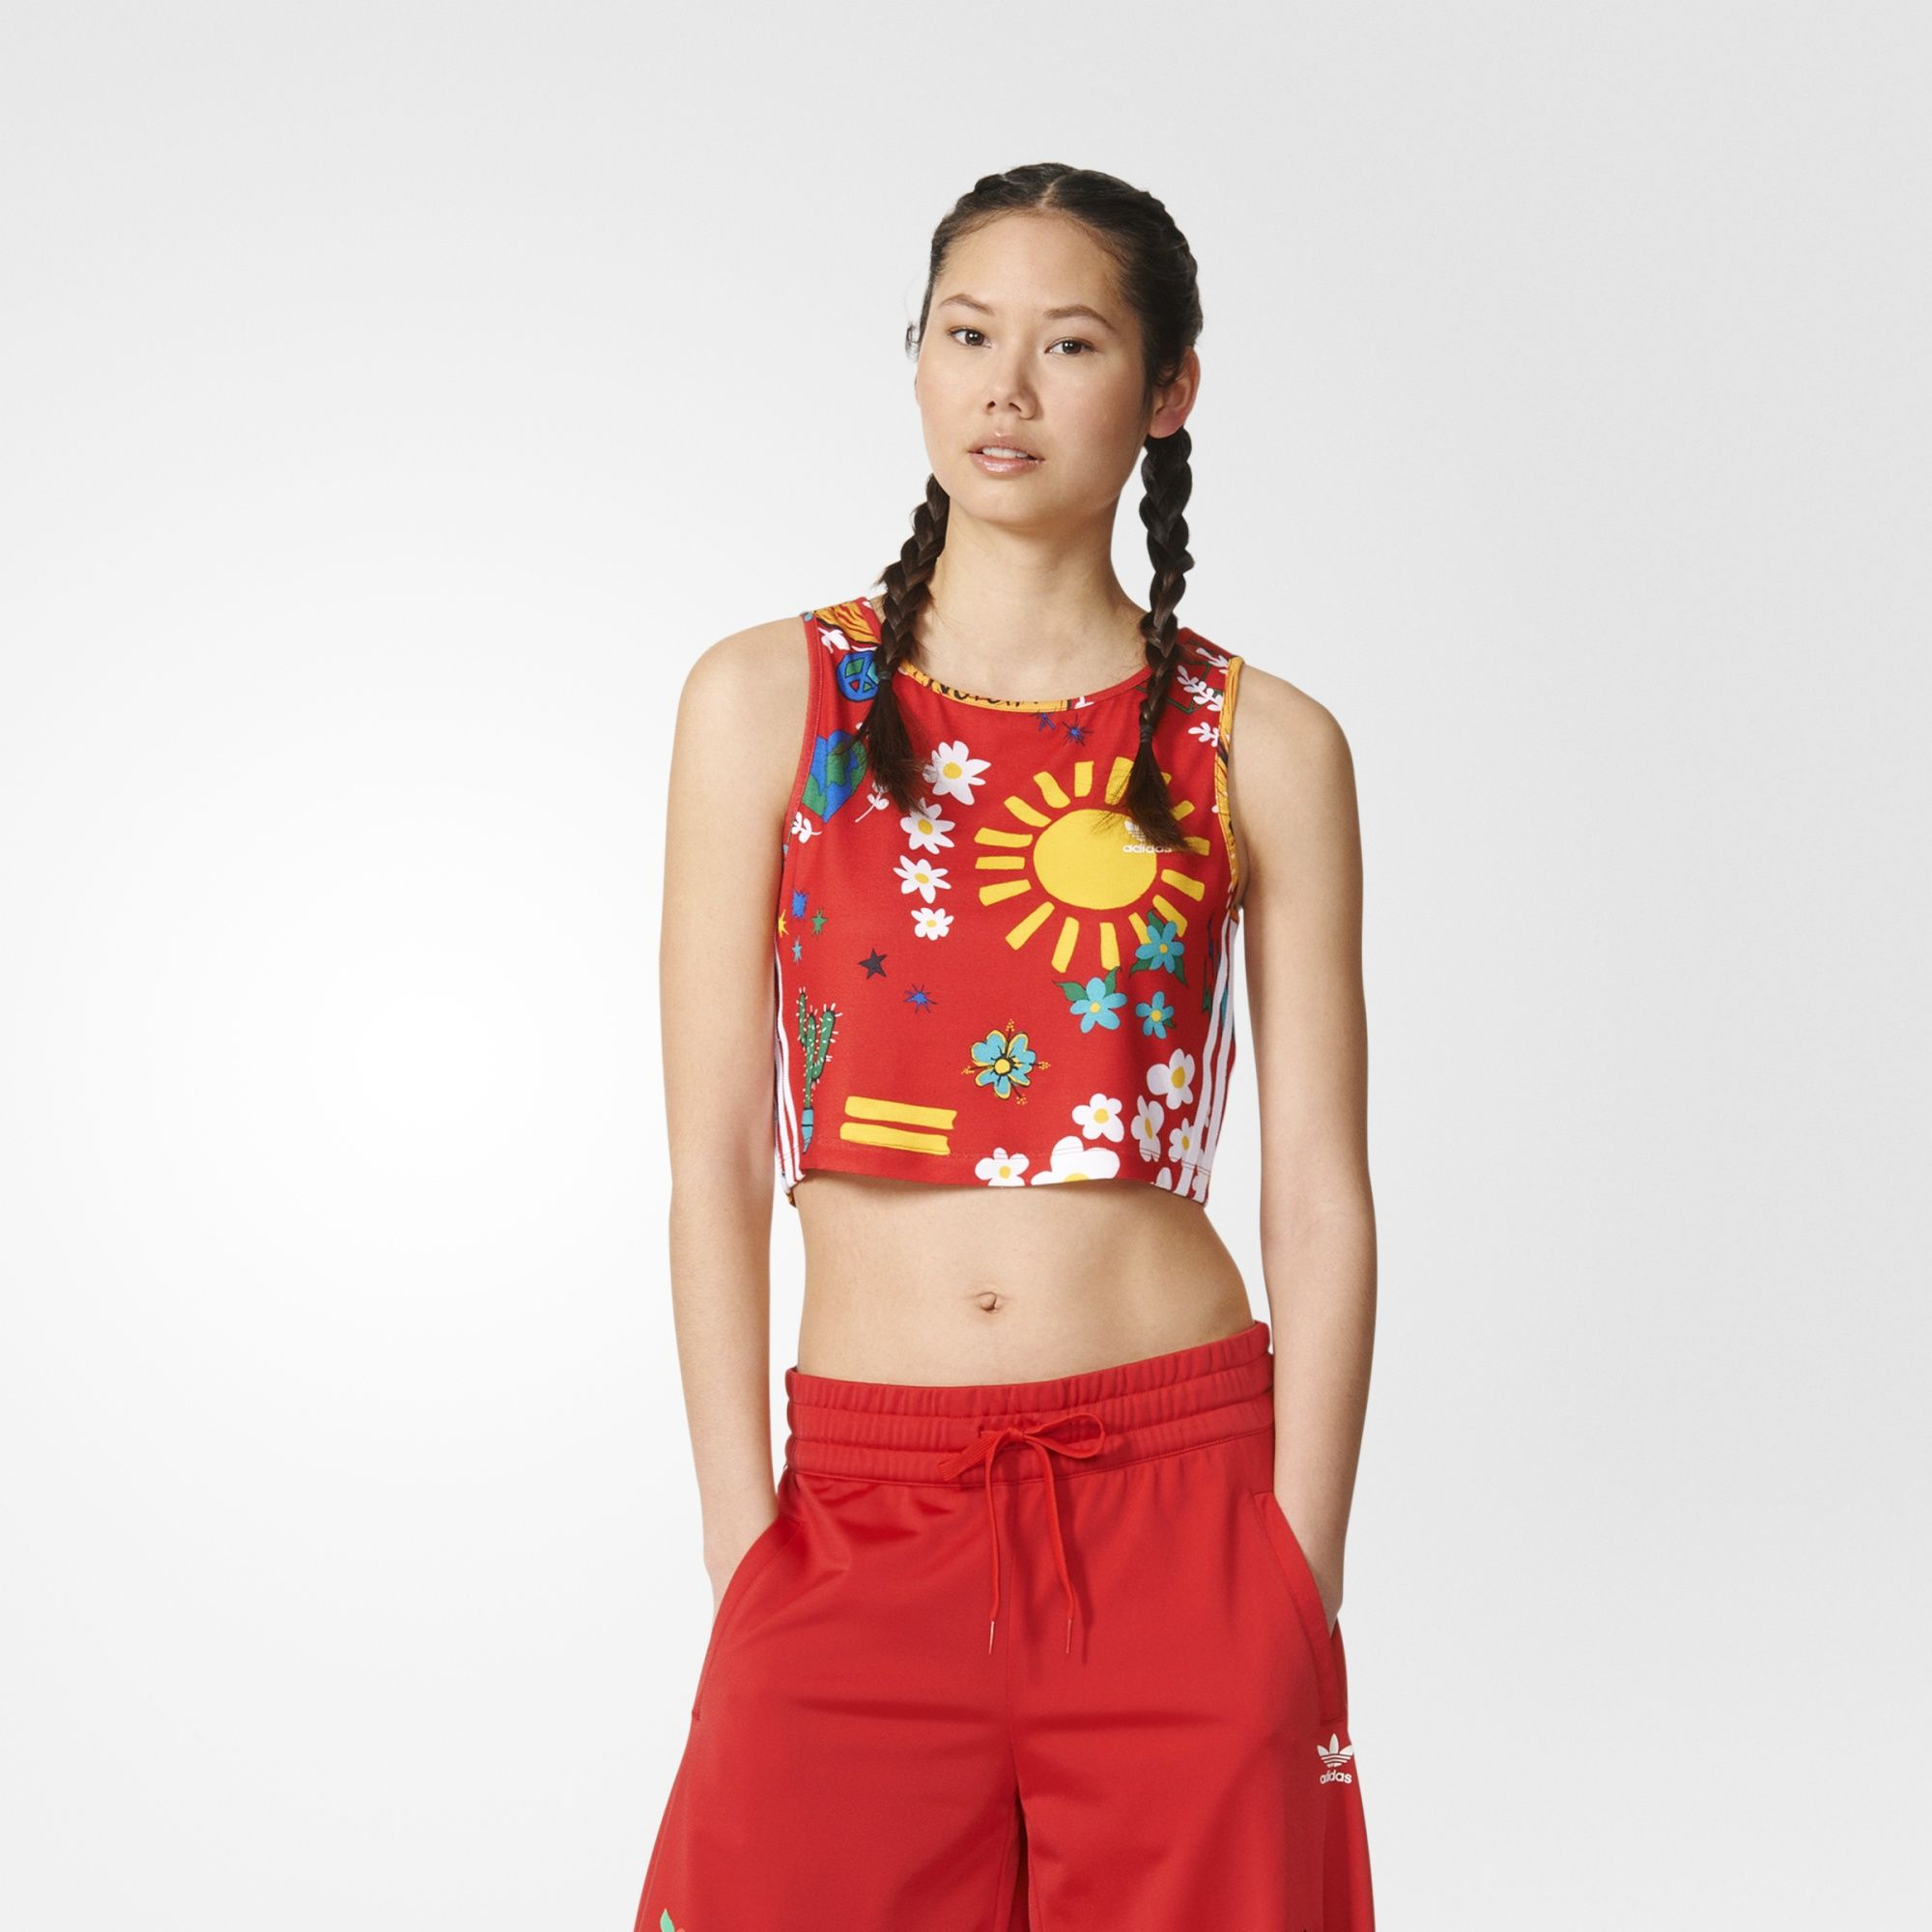 separation shoes df036 cd6fe Details about adidas x Pharrell Womens Artist Cropped Tank Vest Originals  CLEARANCE   AO3154